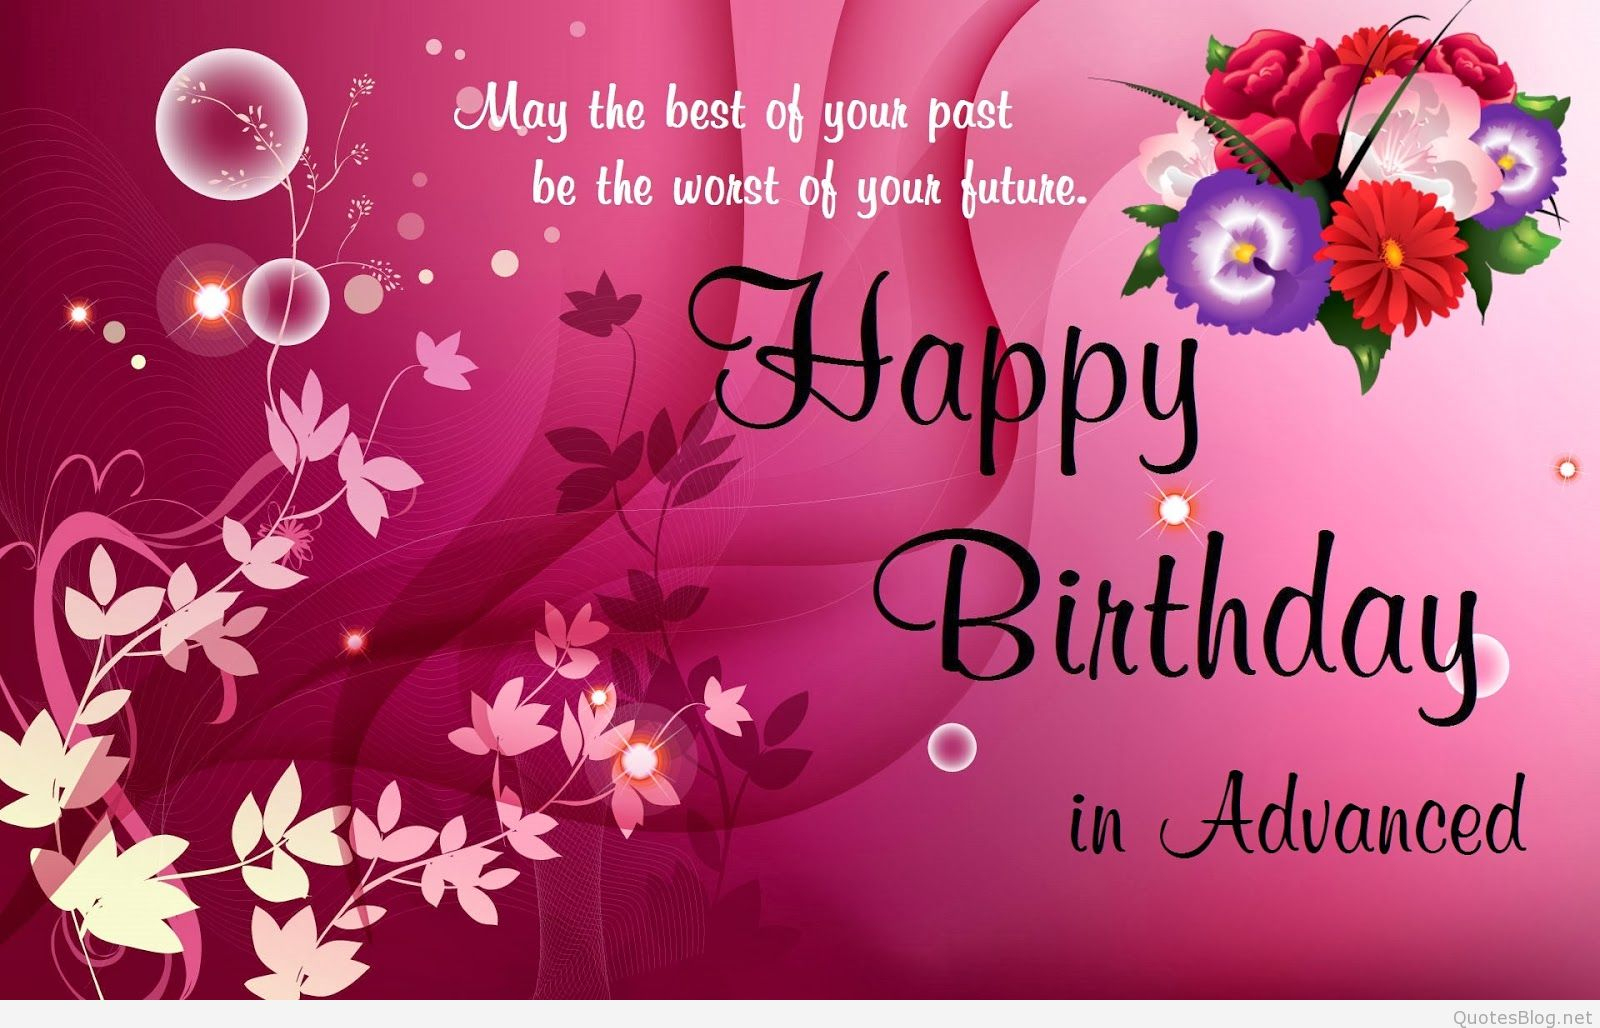 beautiful birthday greetings images ; top-20-happy-birthday-quotes-and-messages-beautiful-happy-birthday-wishes-to-loved-ones